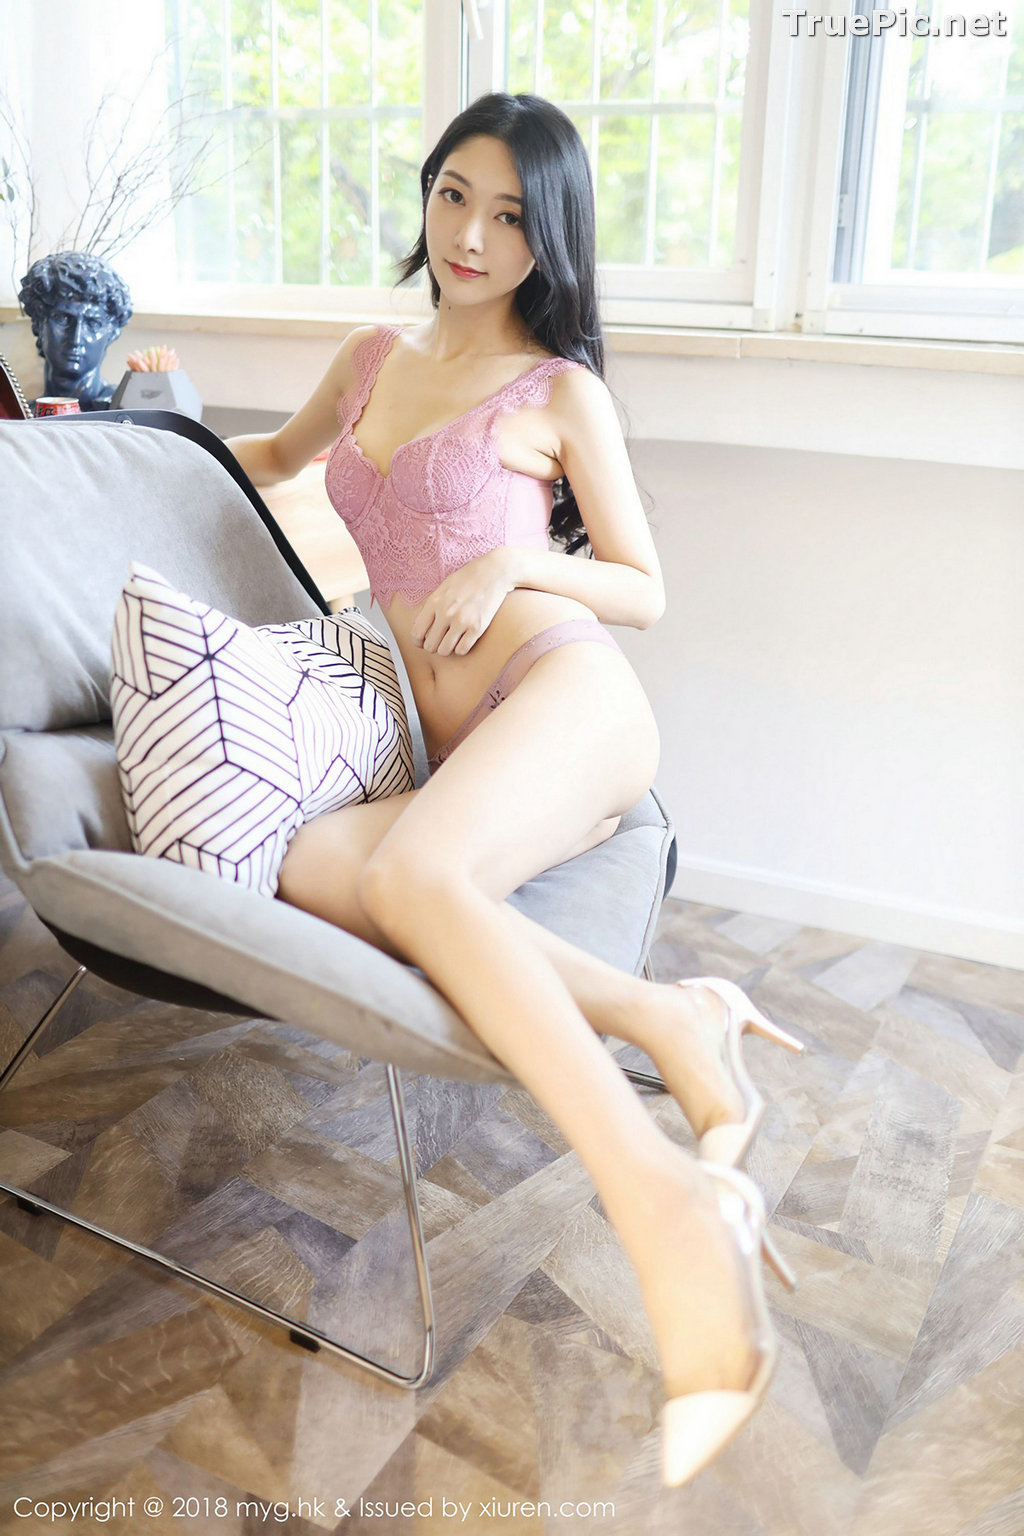 Image MyGirl Vol.322 - Chinese Model - Xiao Reba (Angela小热巴) - Croptop and Jean Short Pants - TruePic.net - Picture-44